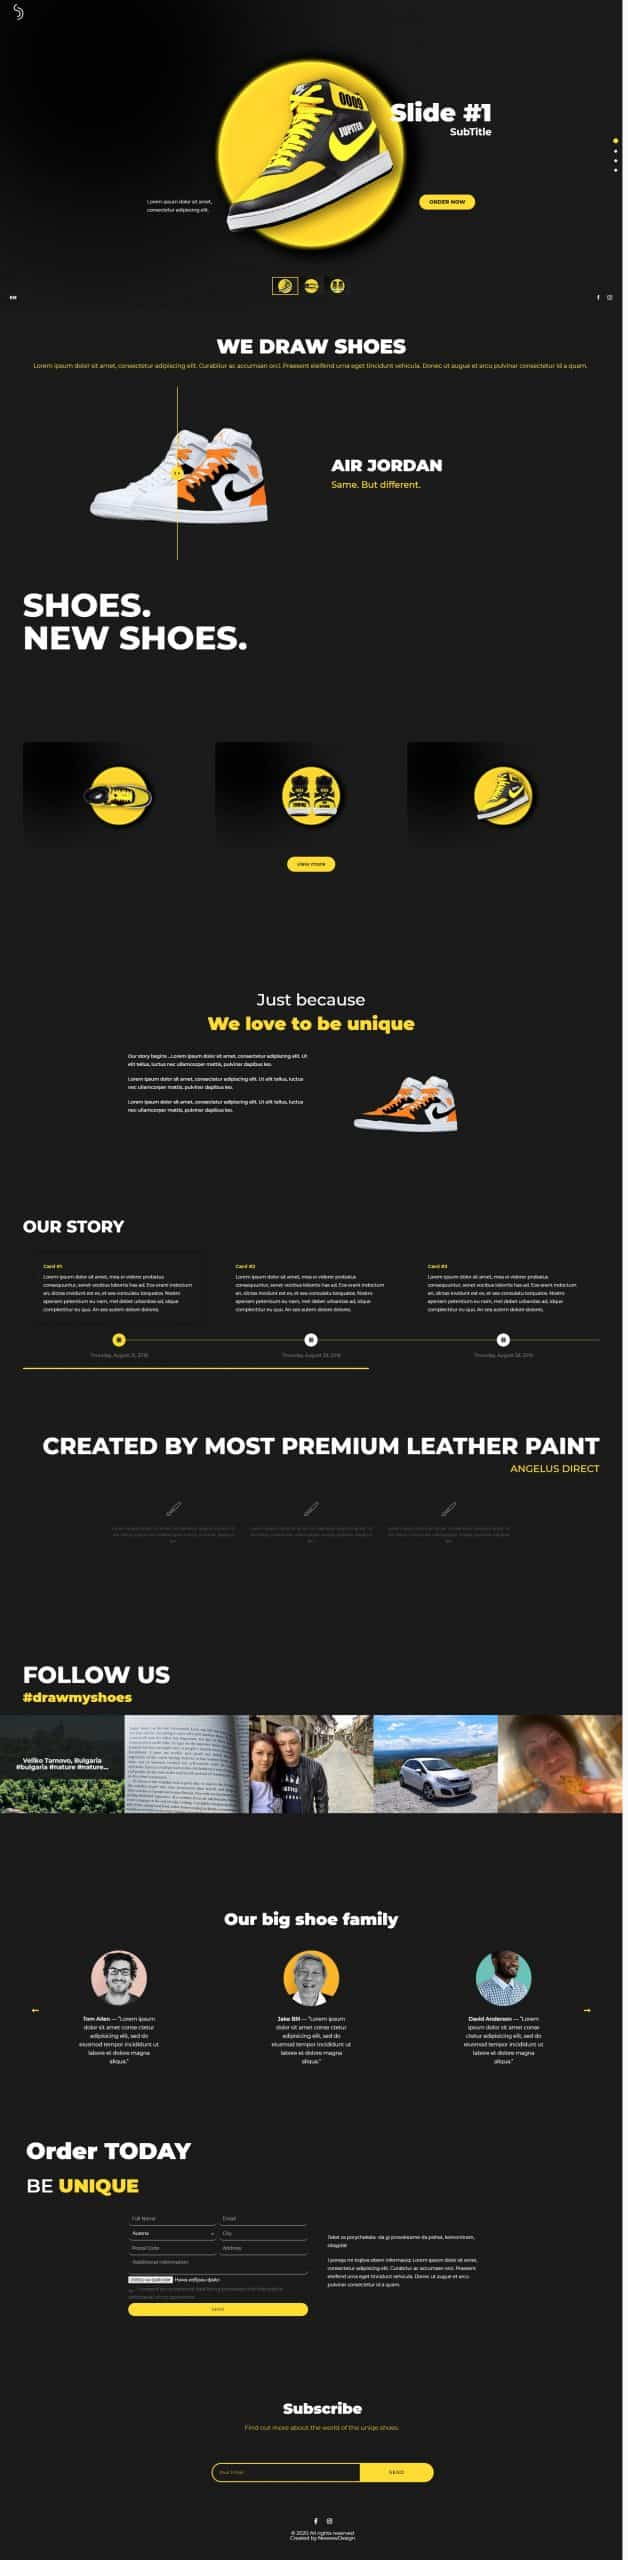 shoedrawer home page design